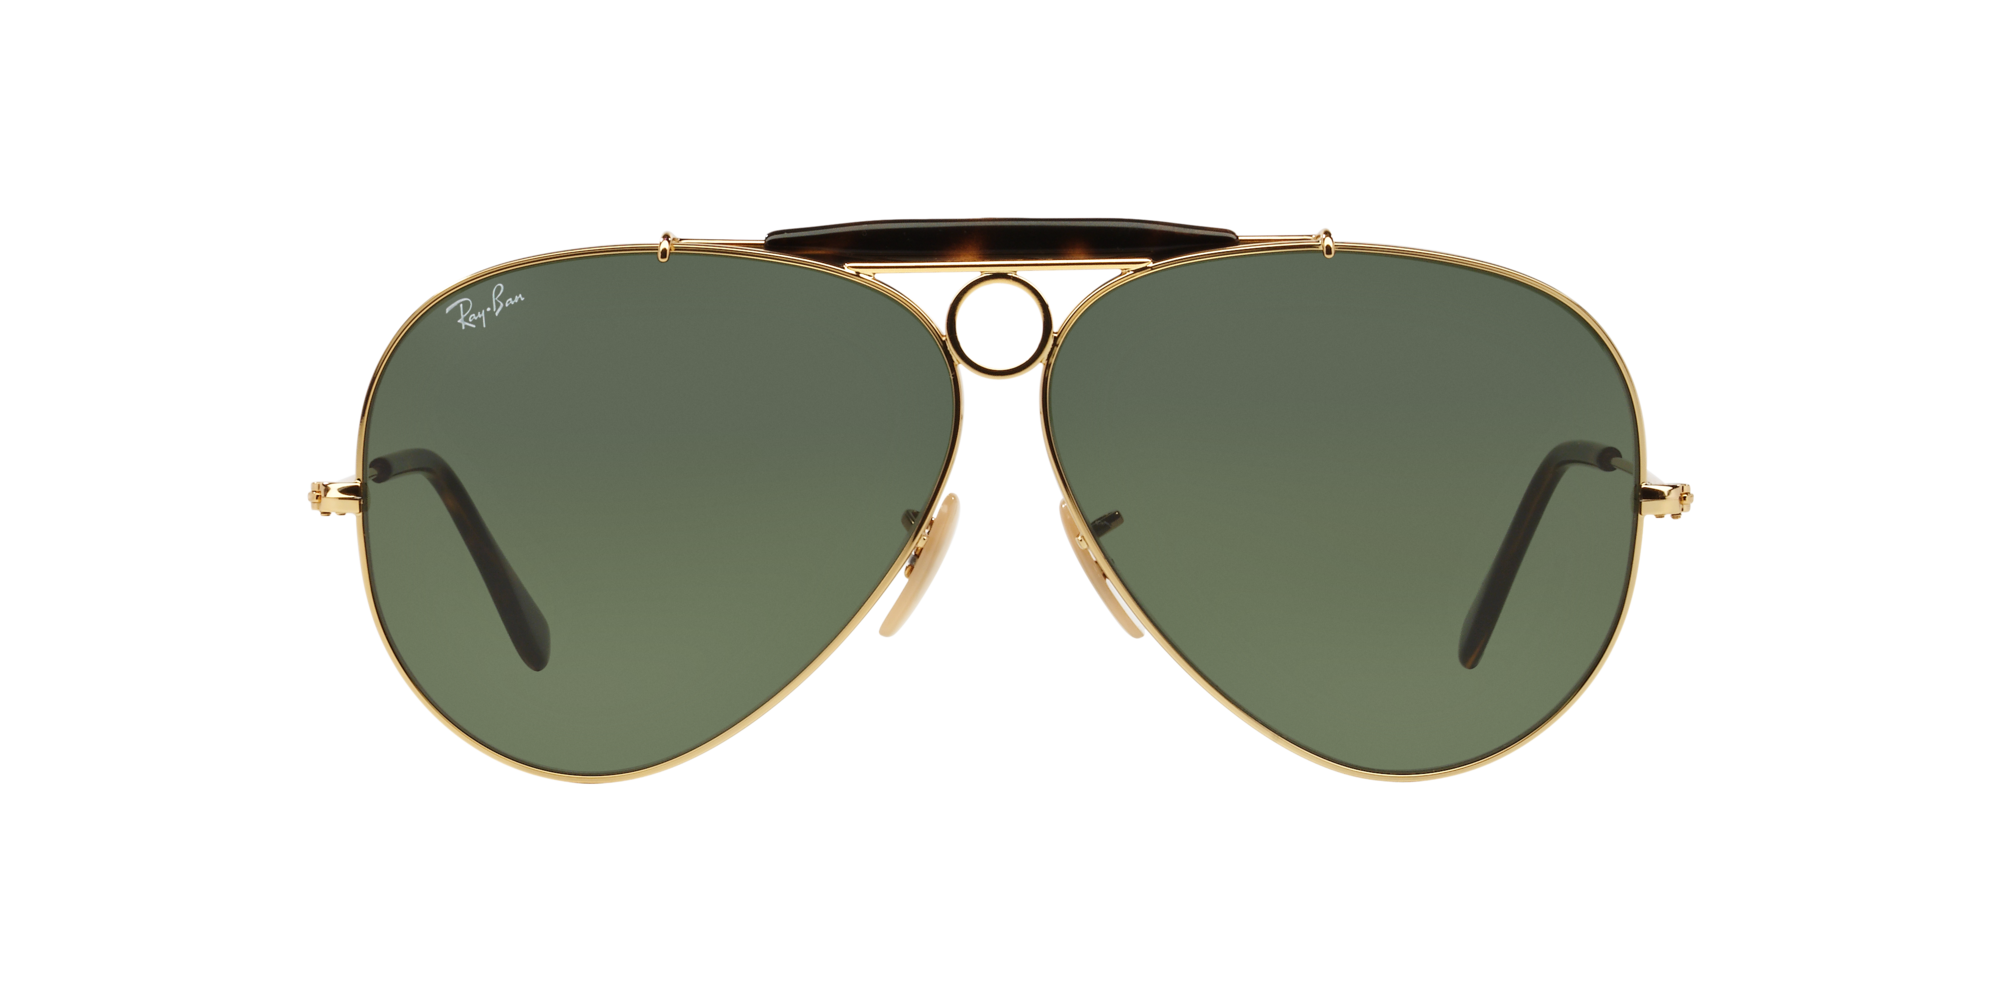 gafas de sol RAY-BAN SHOOTER RB 3138 181. 360° Product View 360° Product  View ... 451965150c